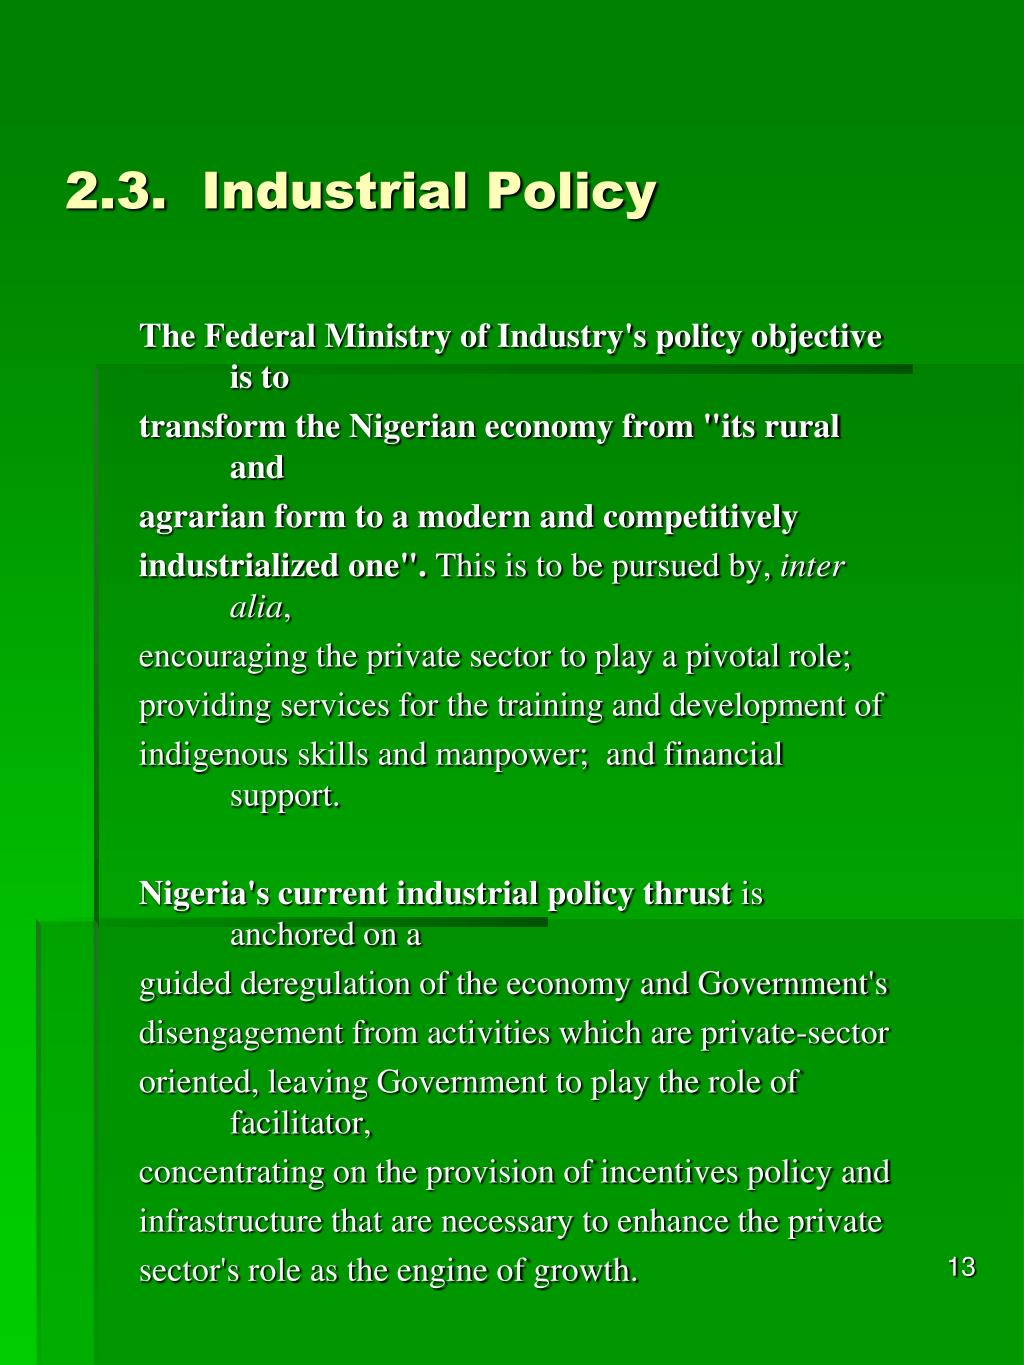 2.3.Industrial Policy